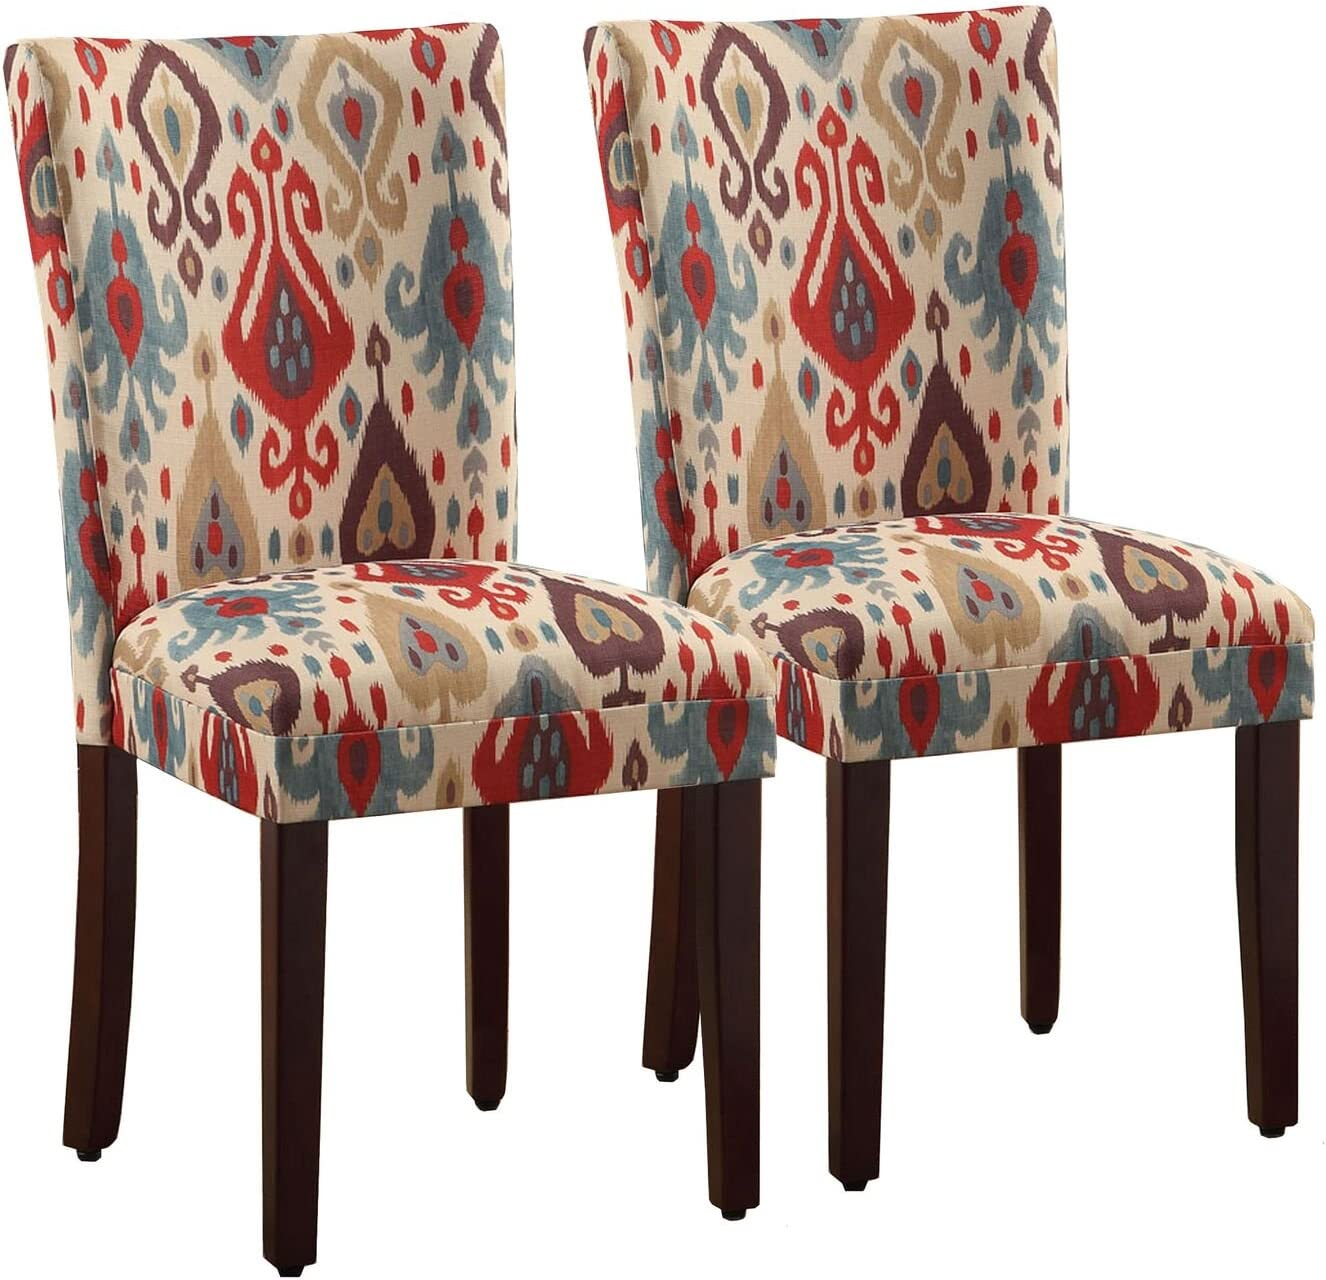 HomePop Parsons Upholstered Accent Dining Chair, Set of 2, Sienna - Chairs